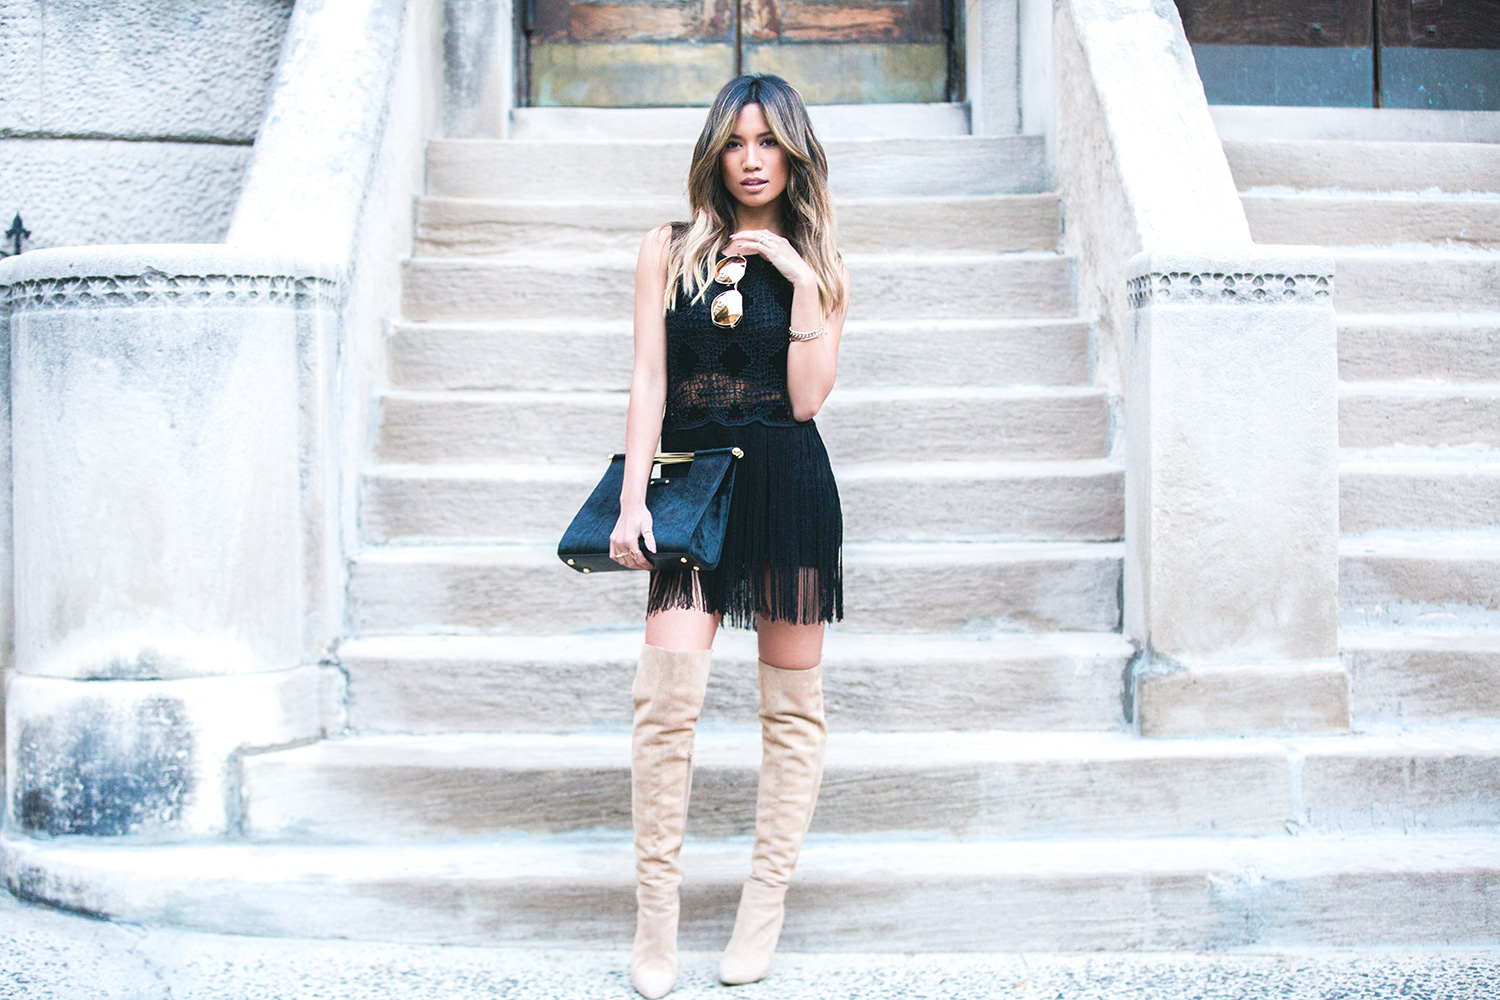 Jessi Malay Los Angeles Blogger .jpg